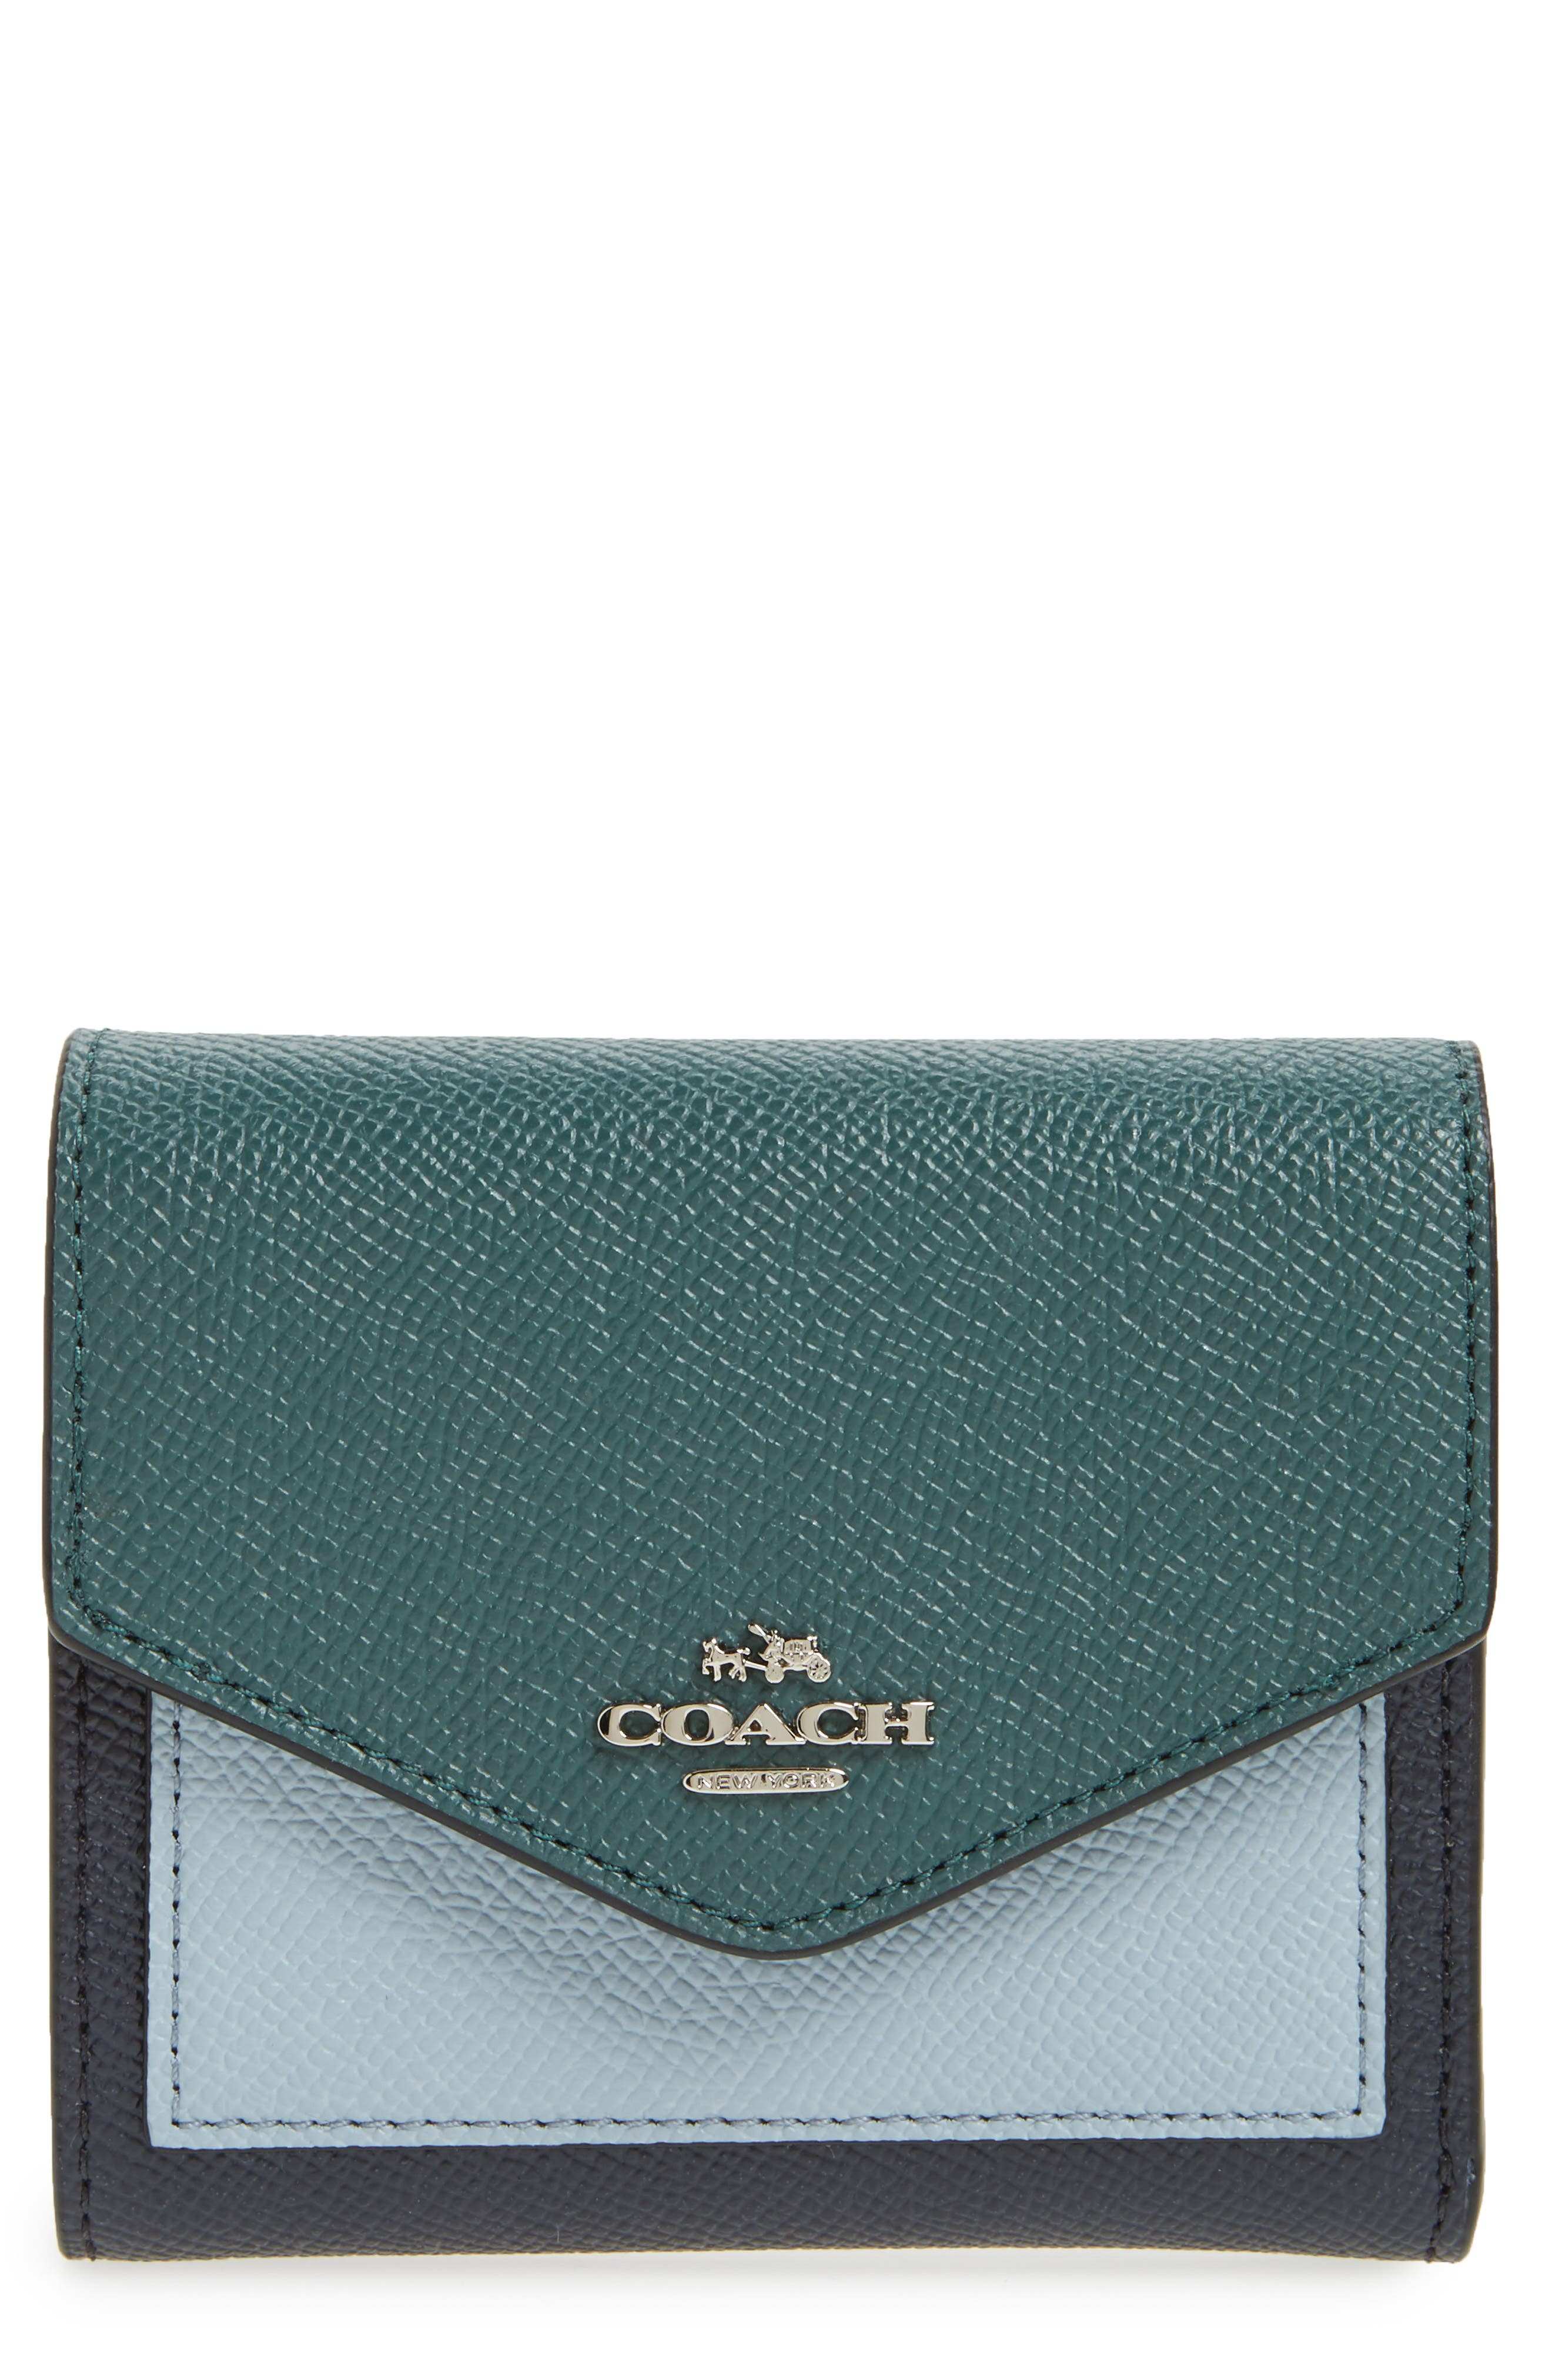 COACH Small Colorblock Calfskin Leather Wallet